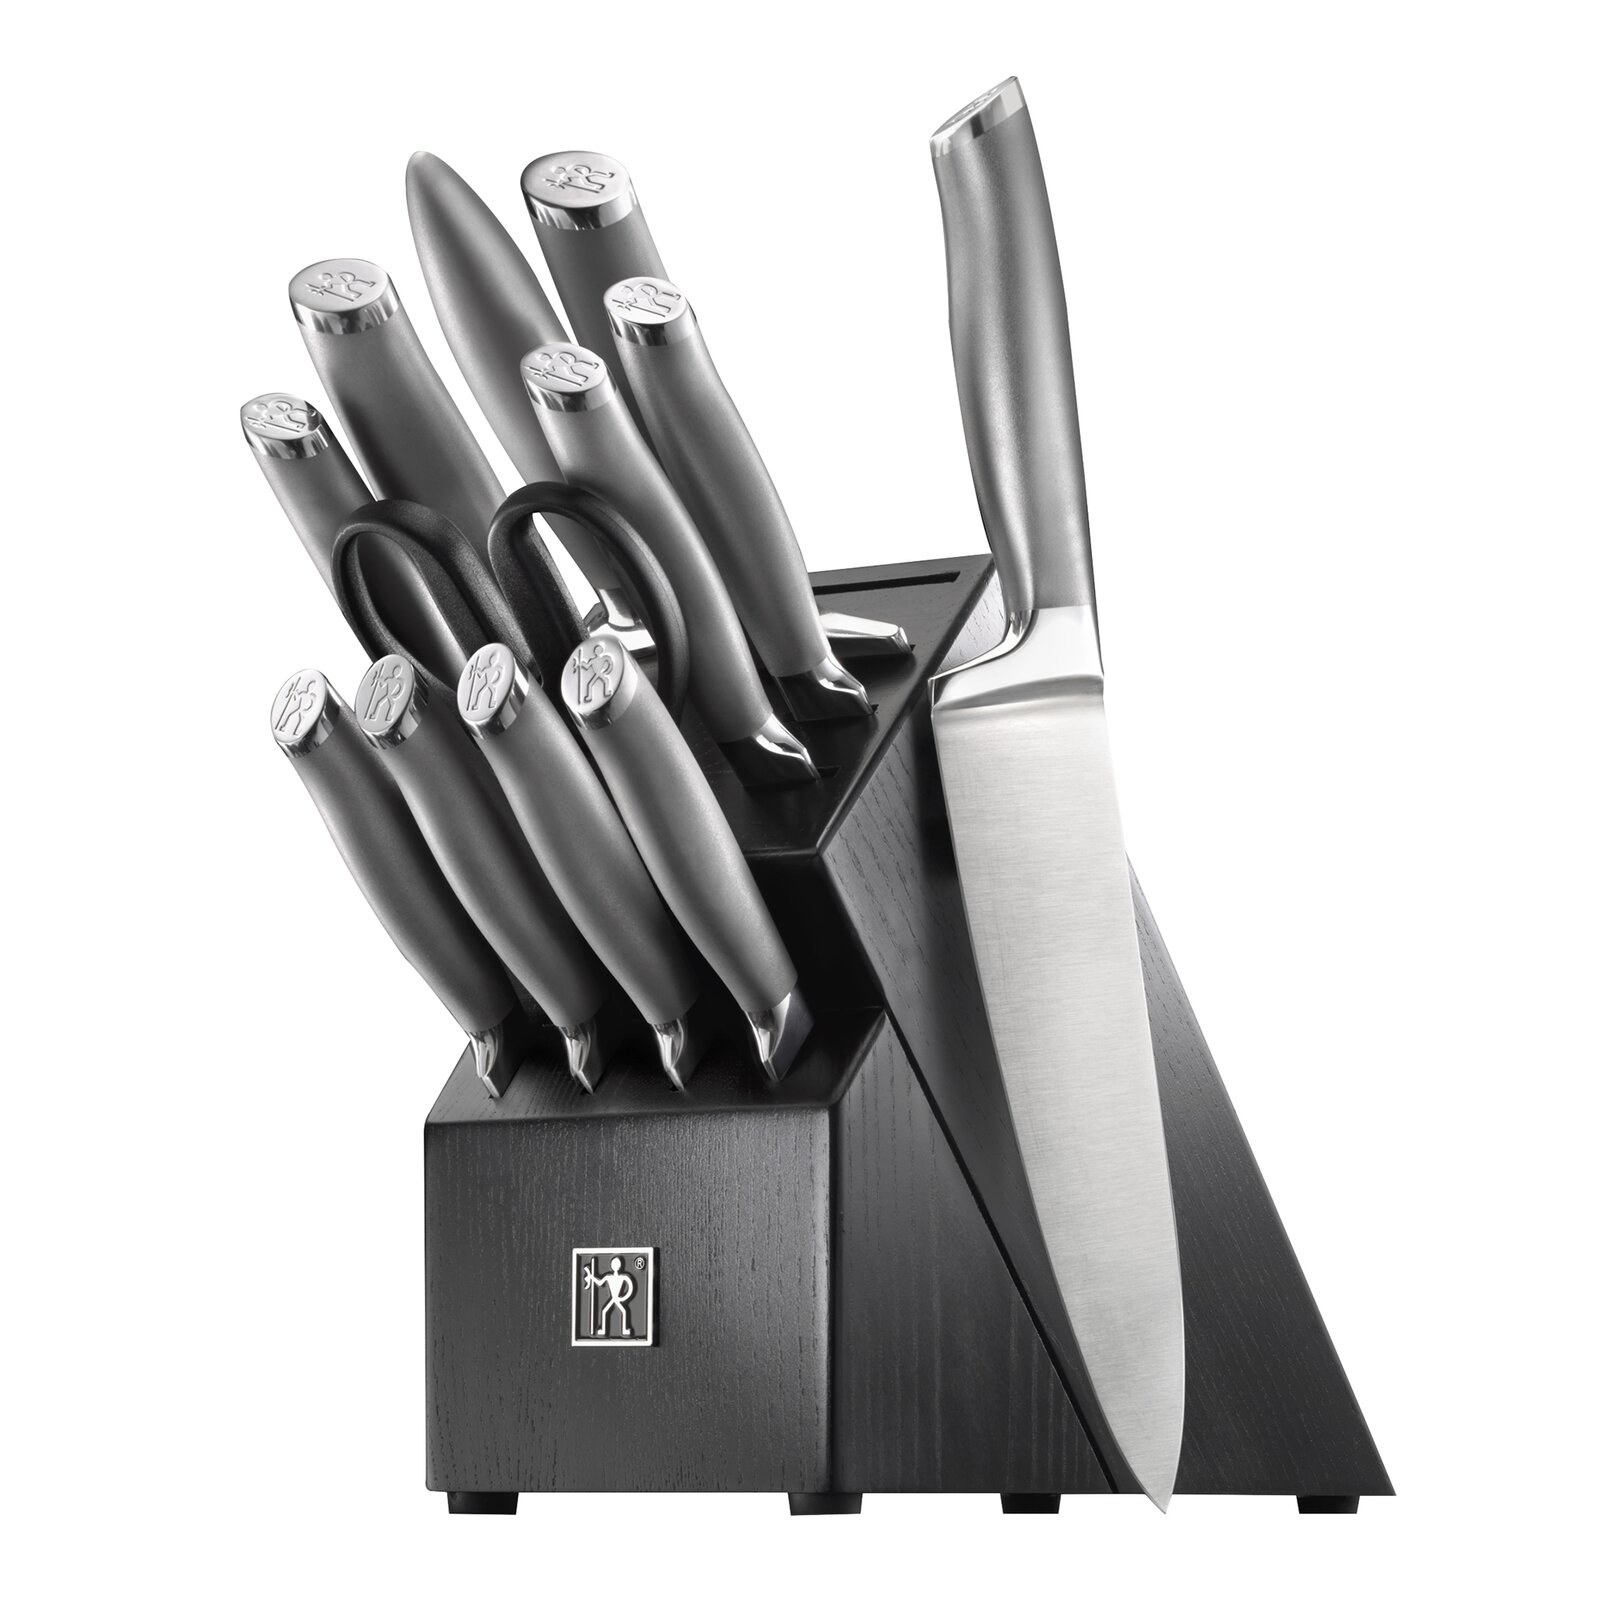 The knives in the included knife block